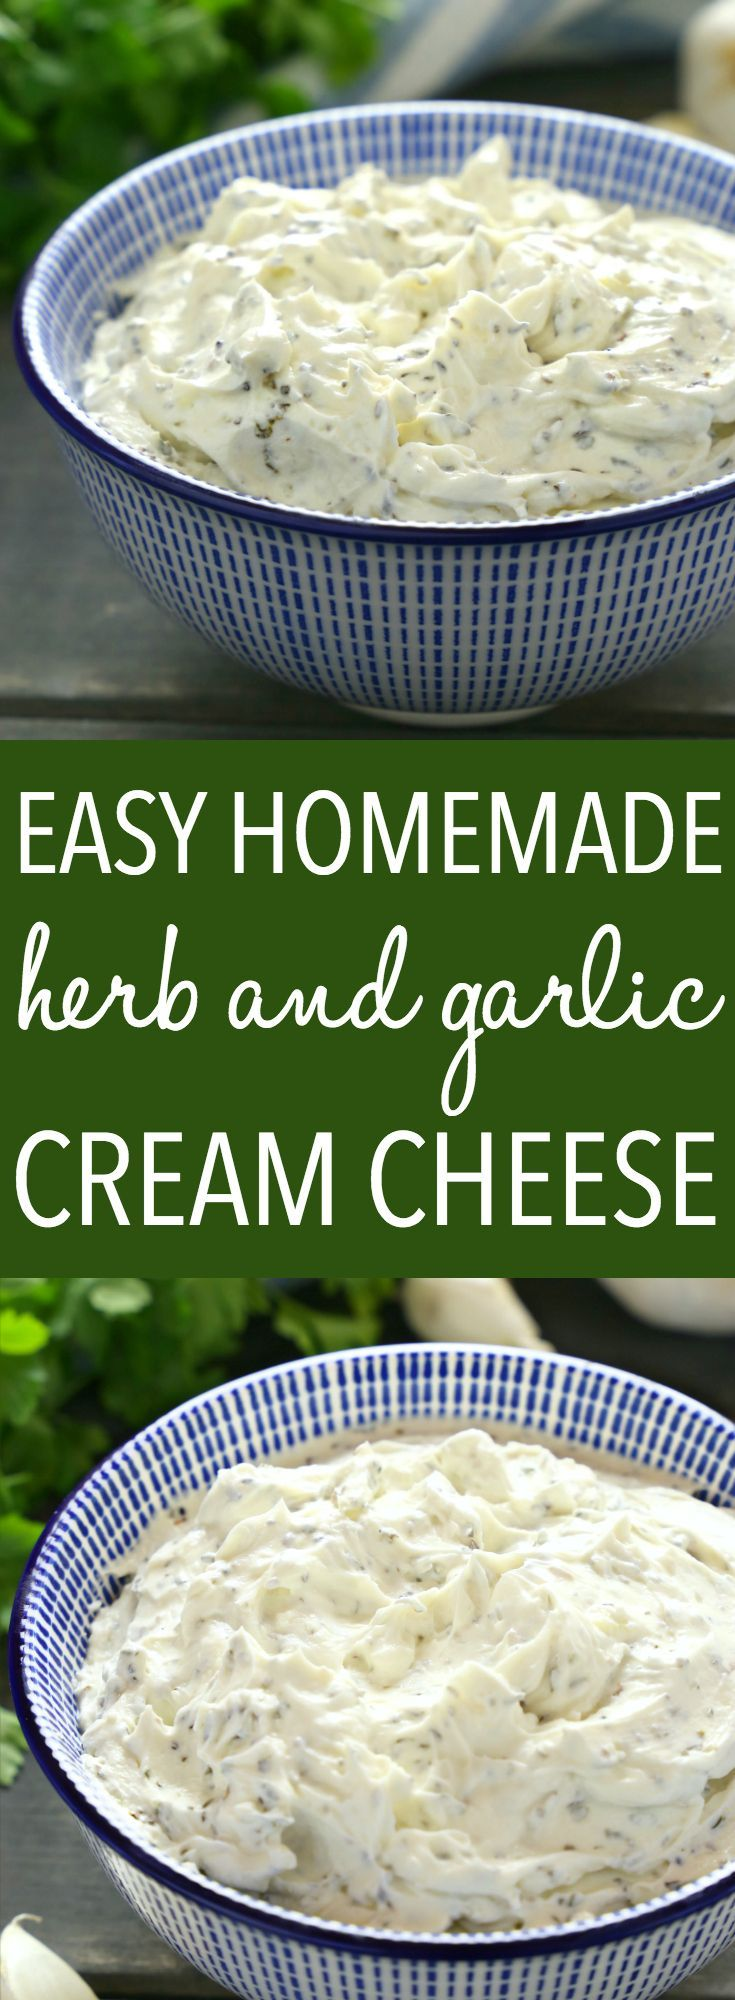 Easy Homemade Herb and Garlic Cream Cheese - The Busy Baker